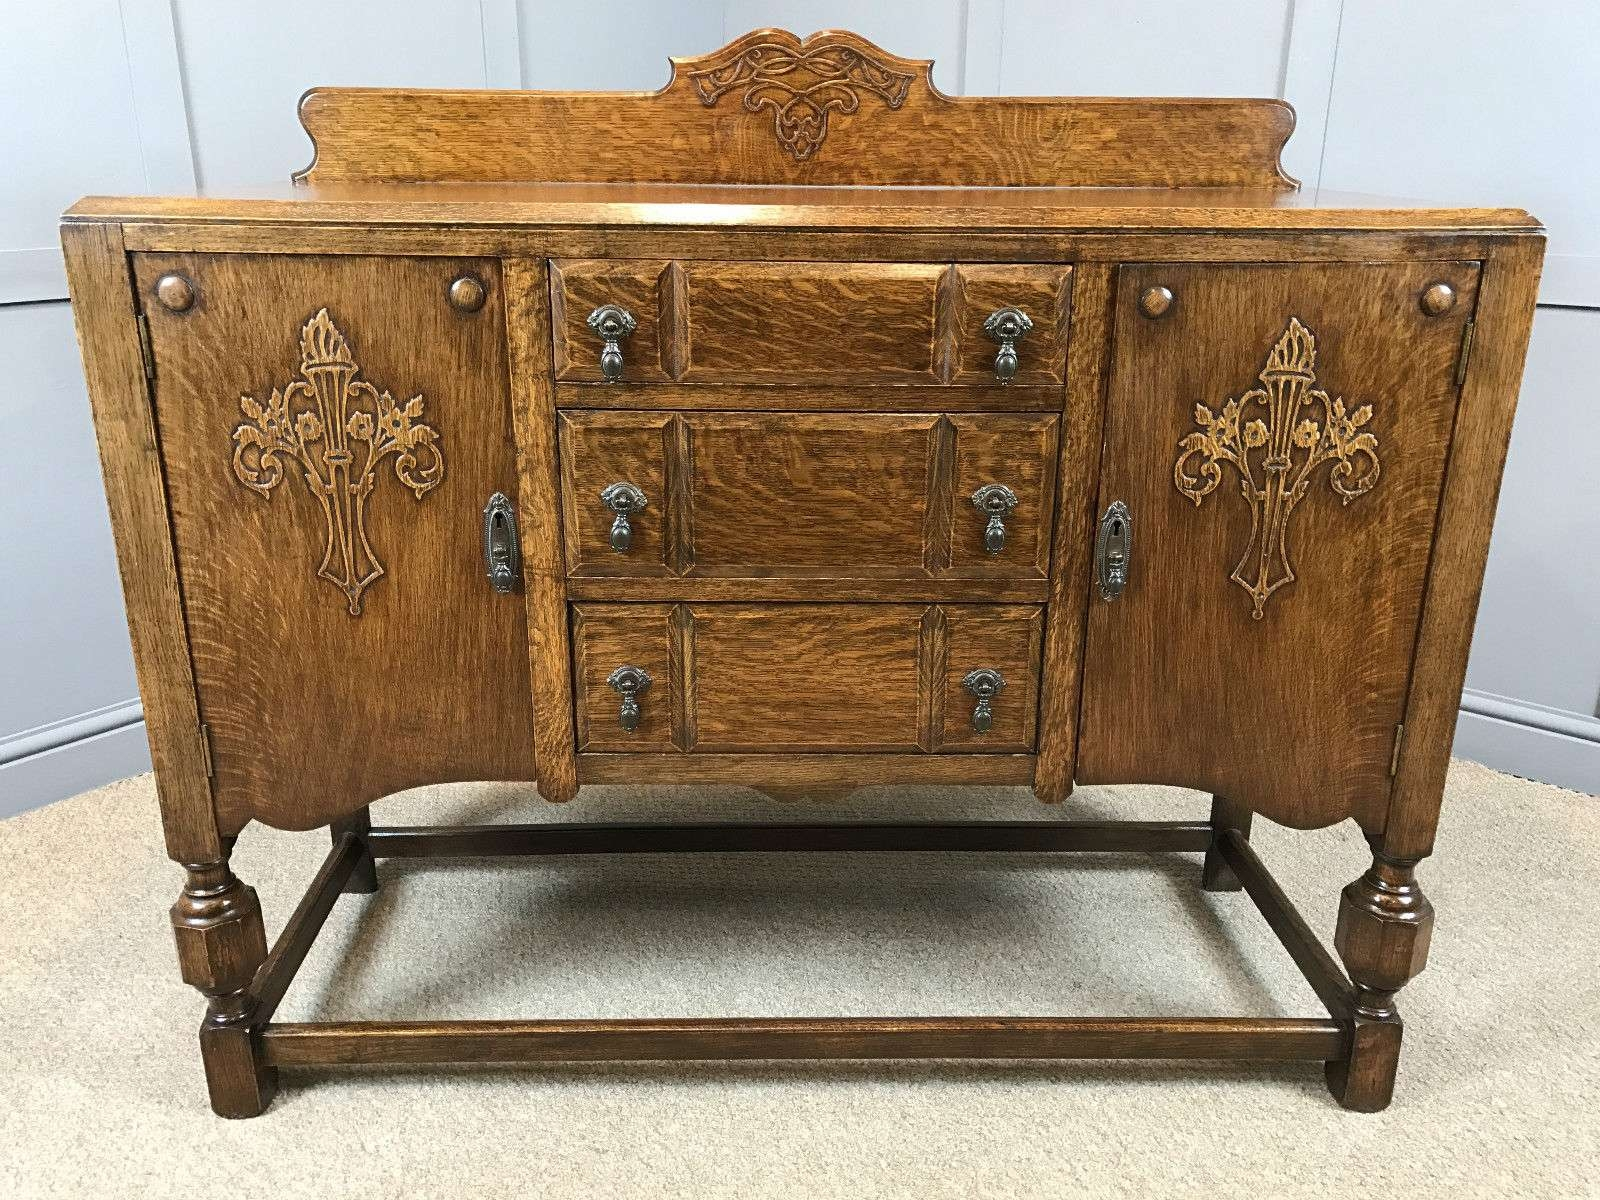 Antique Oak Sideboard For Living Room — Rocket Uncle Rocket Uncle For Antique Oak Sideboards (View 8 of 20)